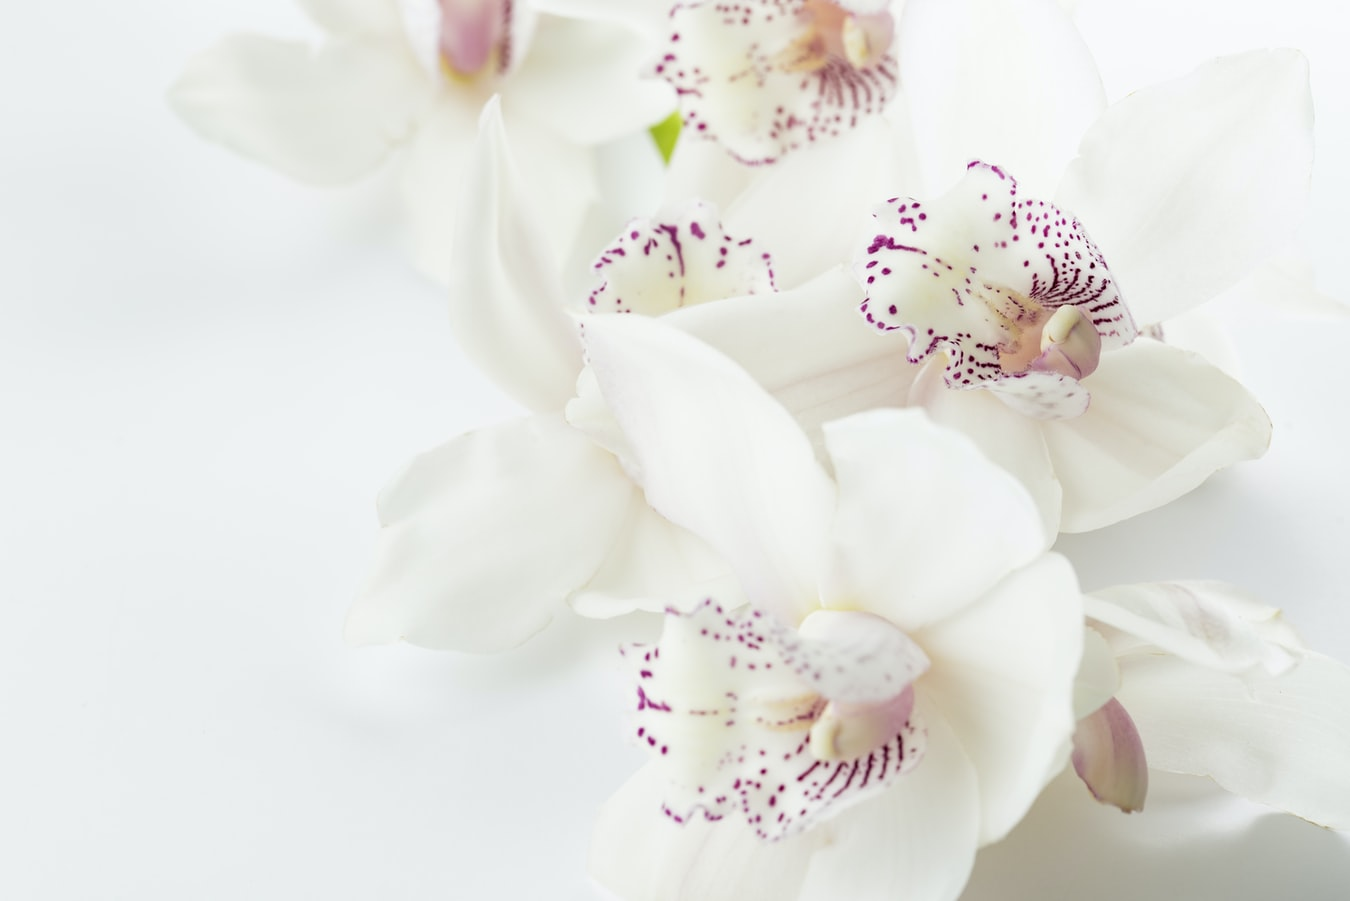 Close-up of white orchids with purple spots on a white surface